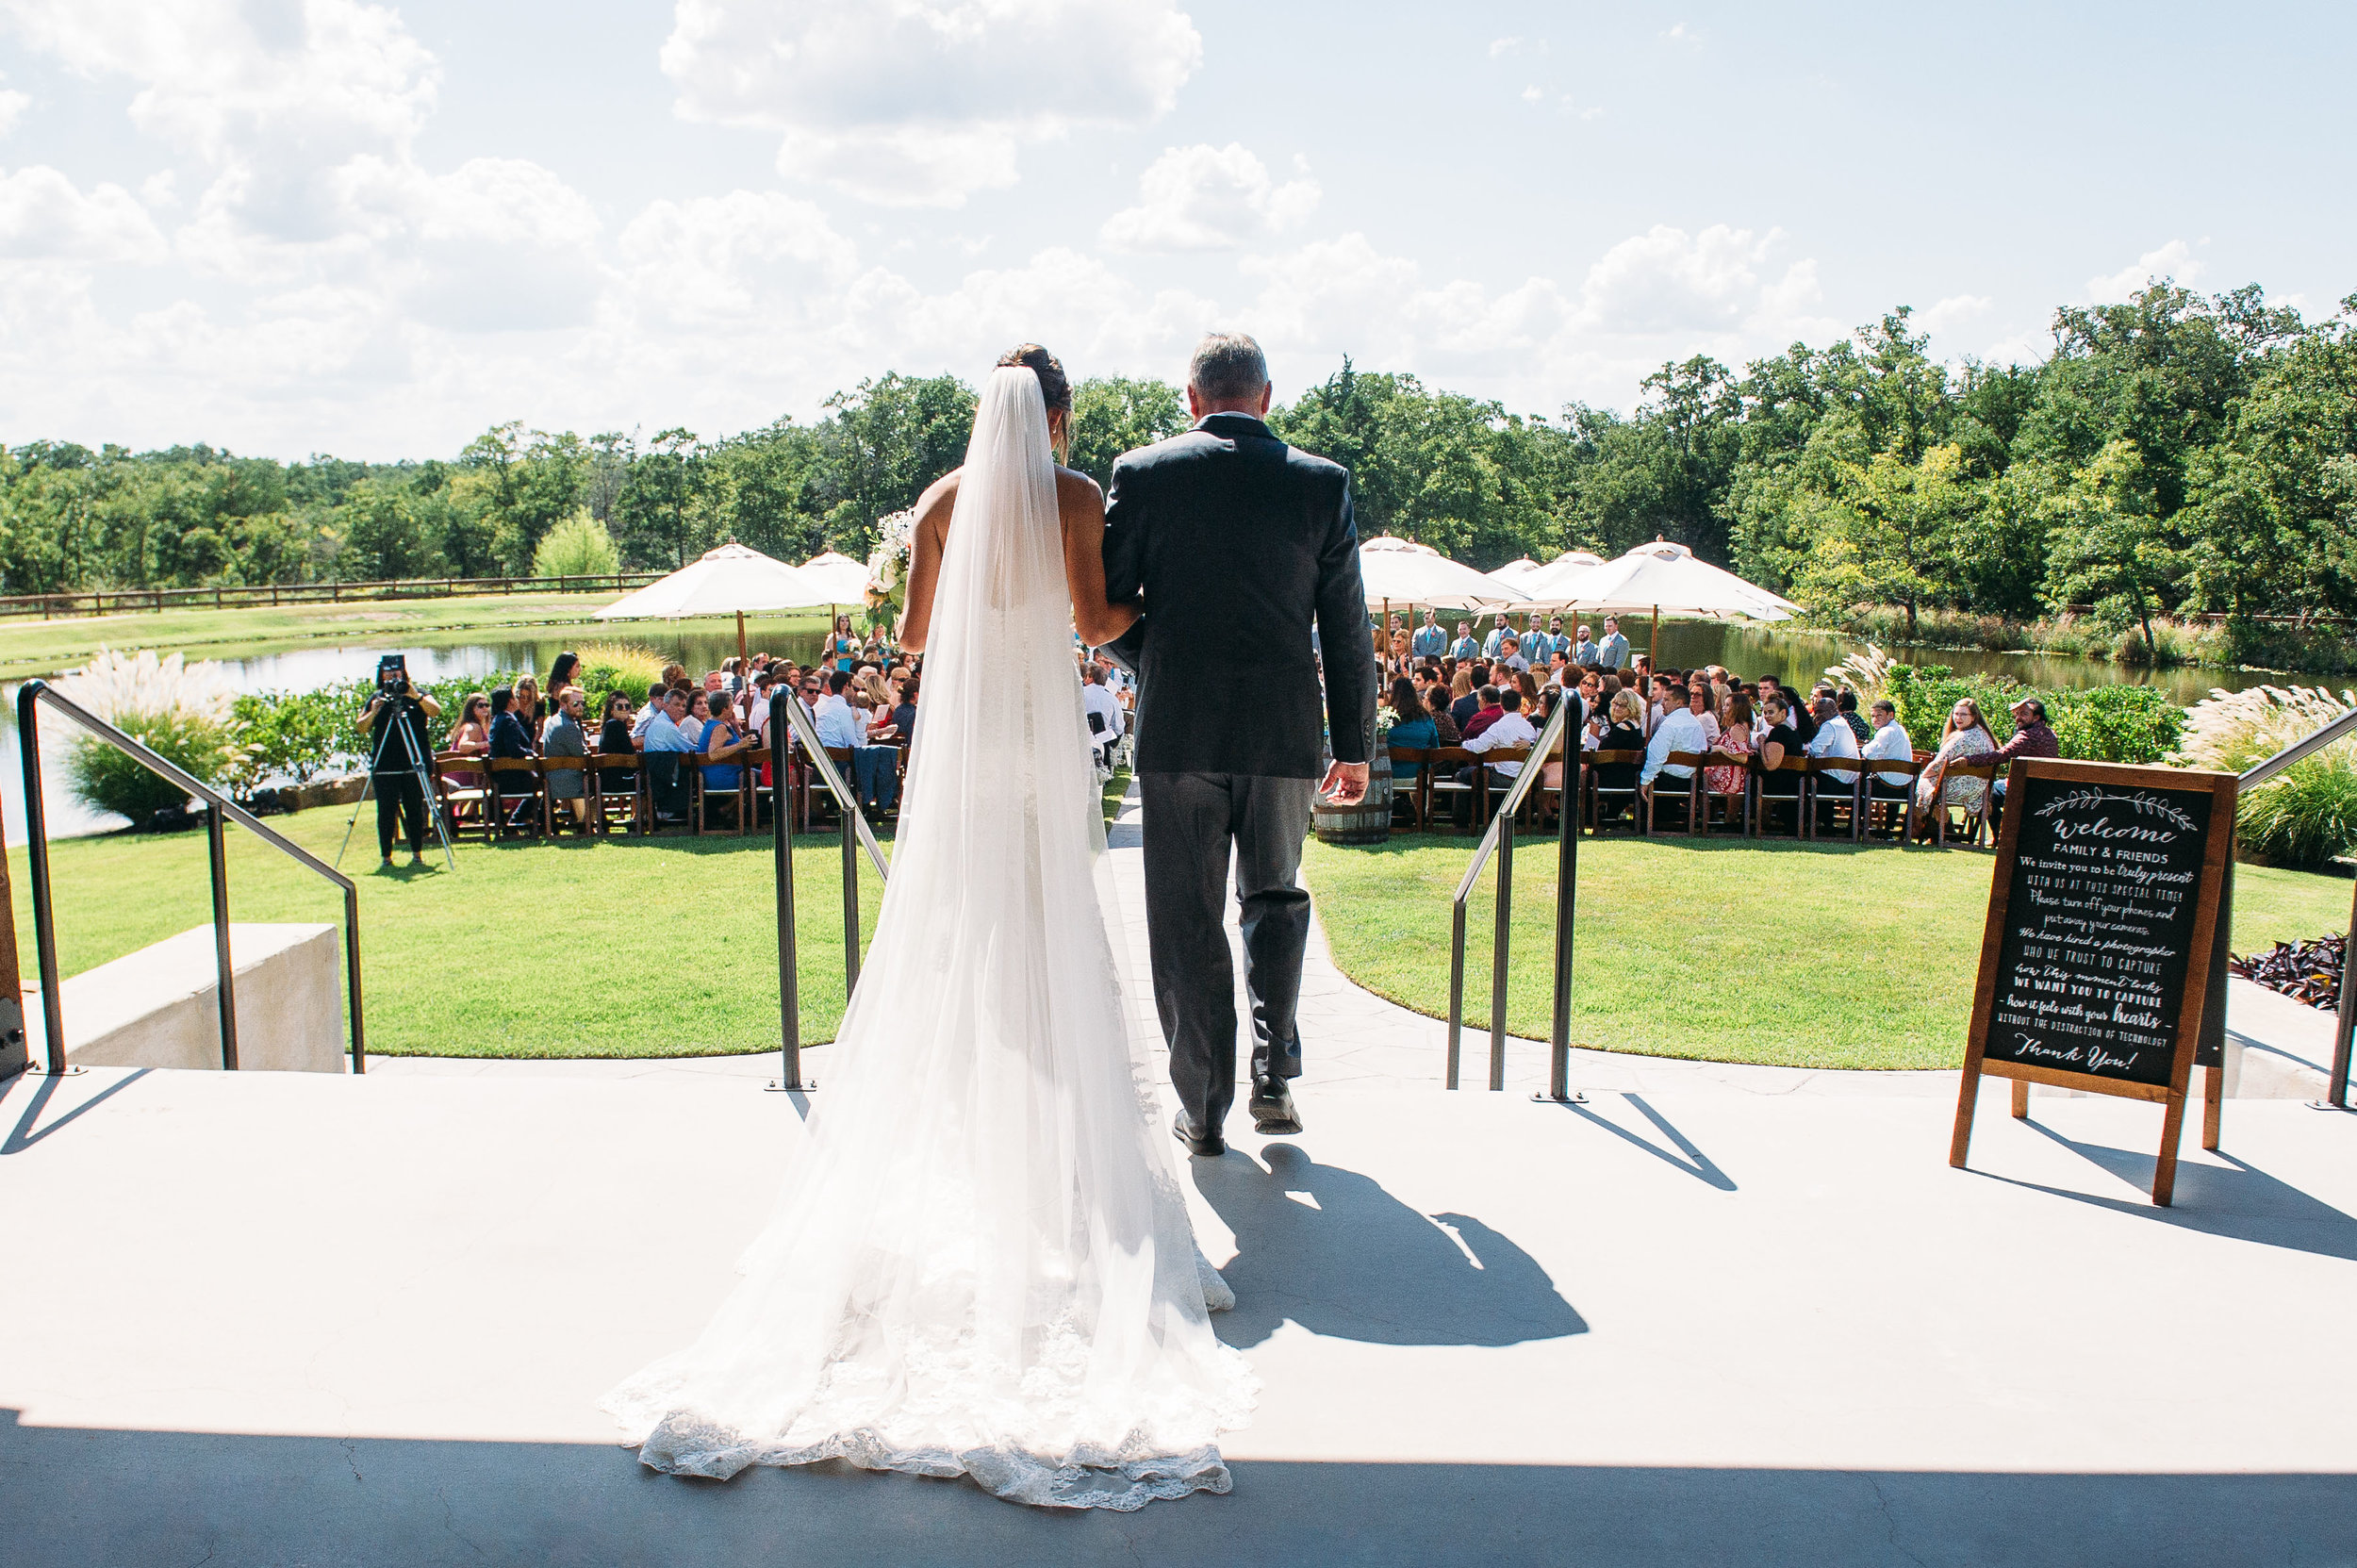 Cameron-Price-Peach-Creek-Ranch-Wedding-Ceremony-Bridals-Engagement-College-Station-Photographer-Videographer-San-Angel-Photo-00-0139.jpg